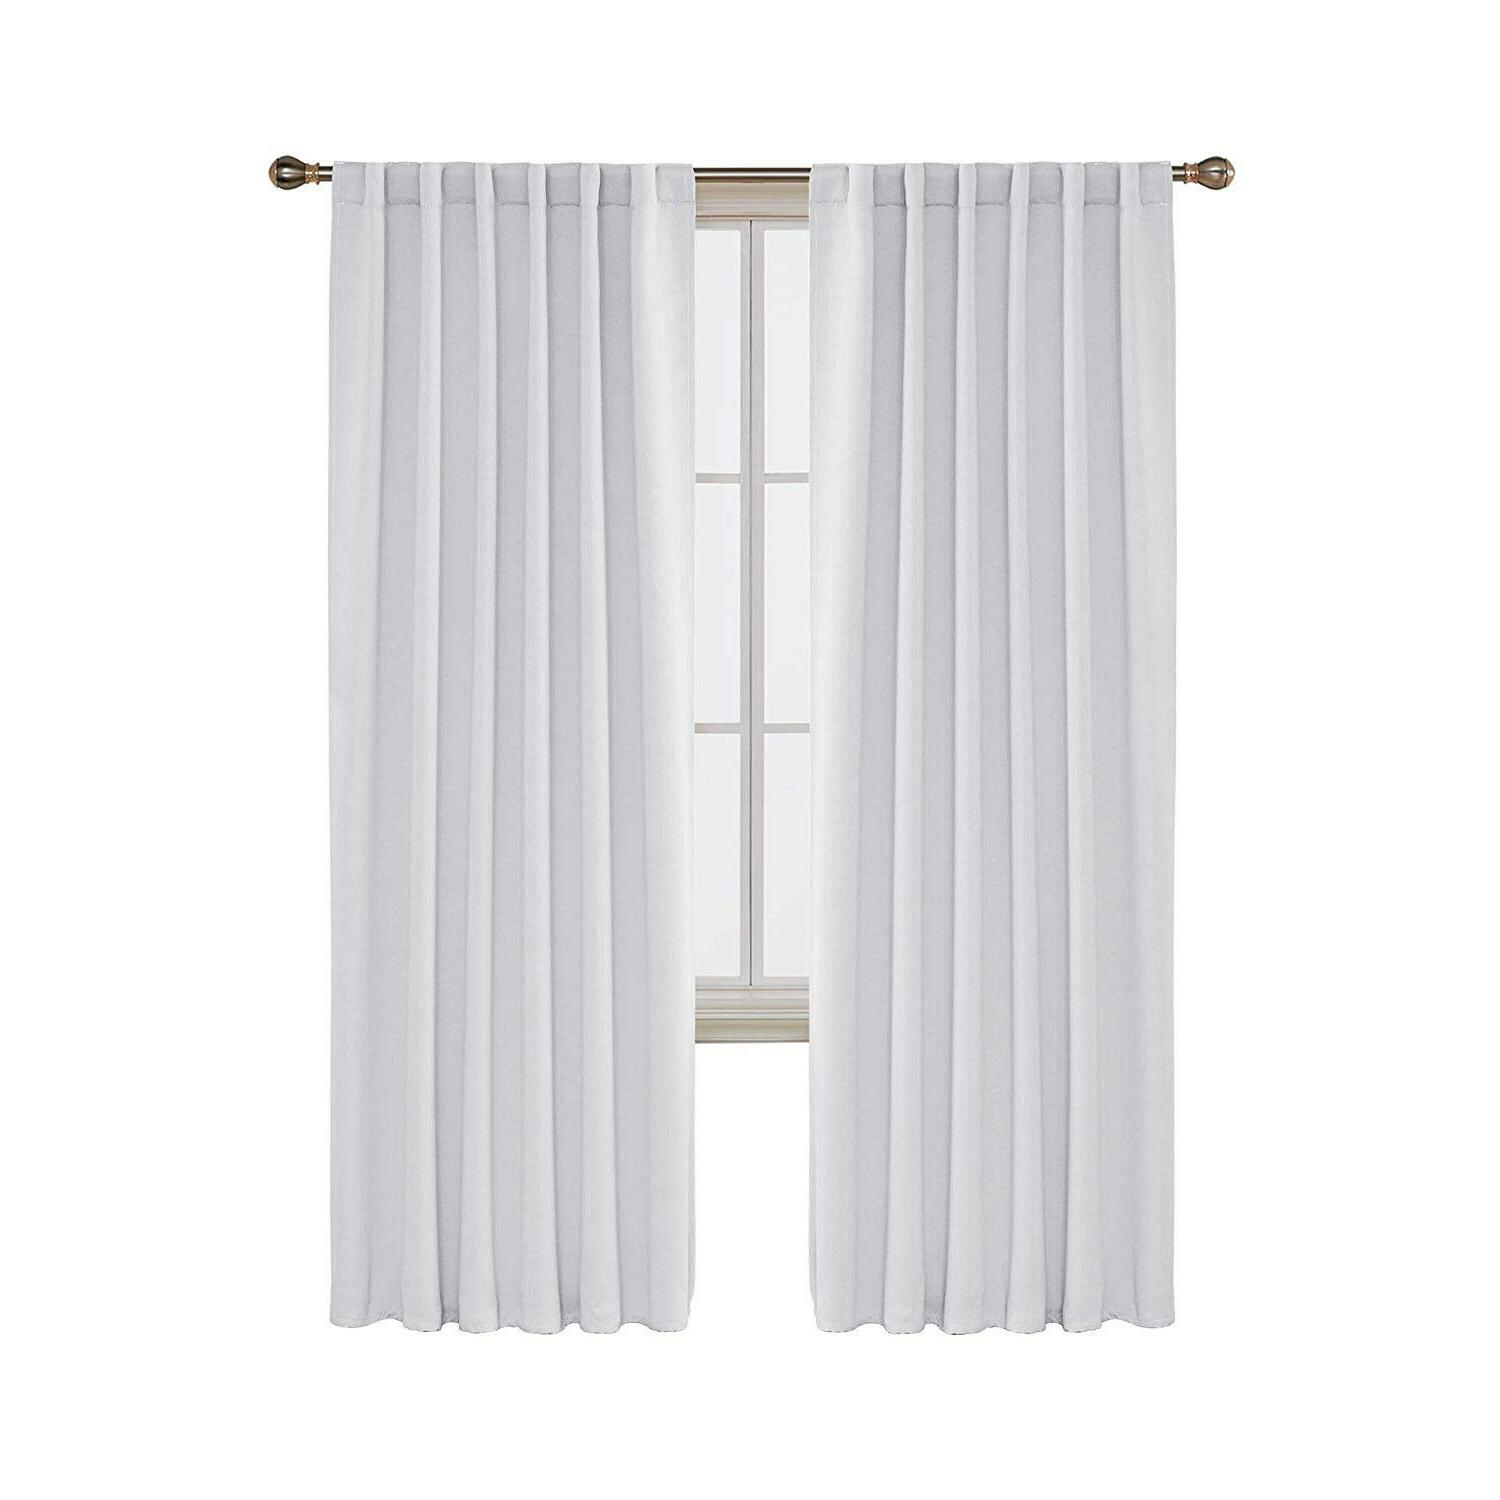 Deconovo Solid Back Curtains out 52x84 White 2 Panels